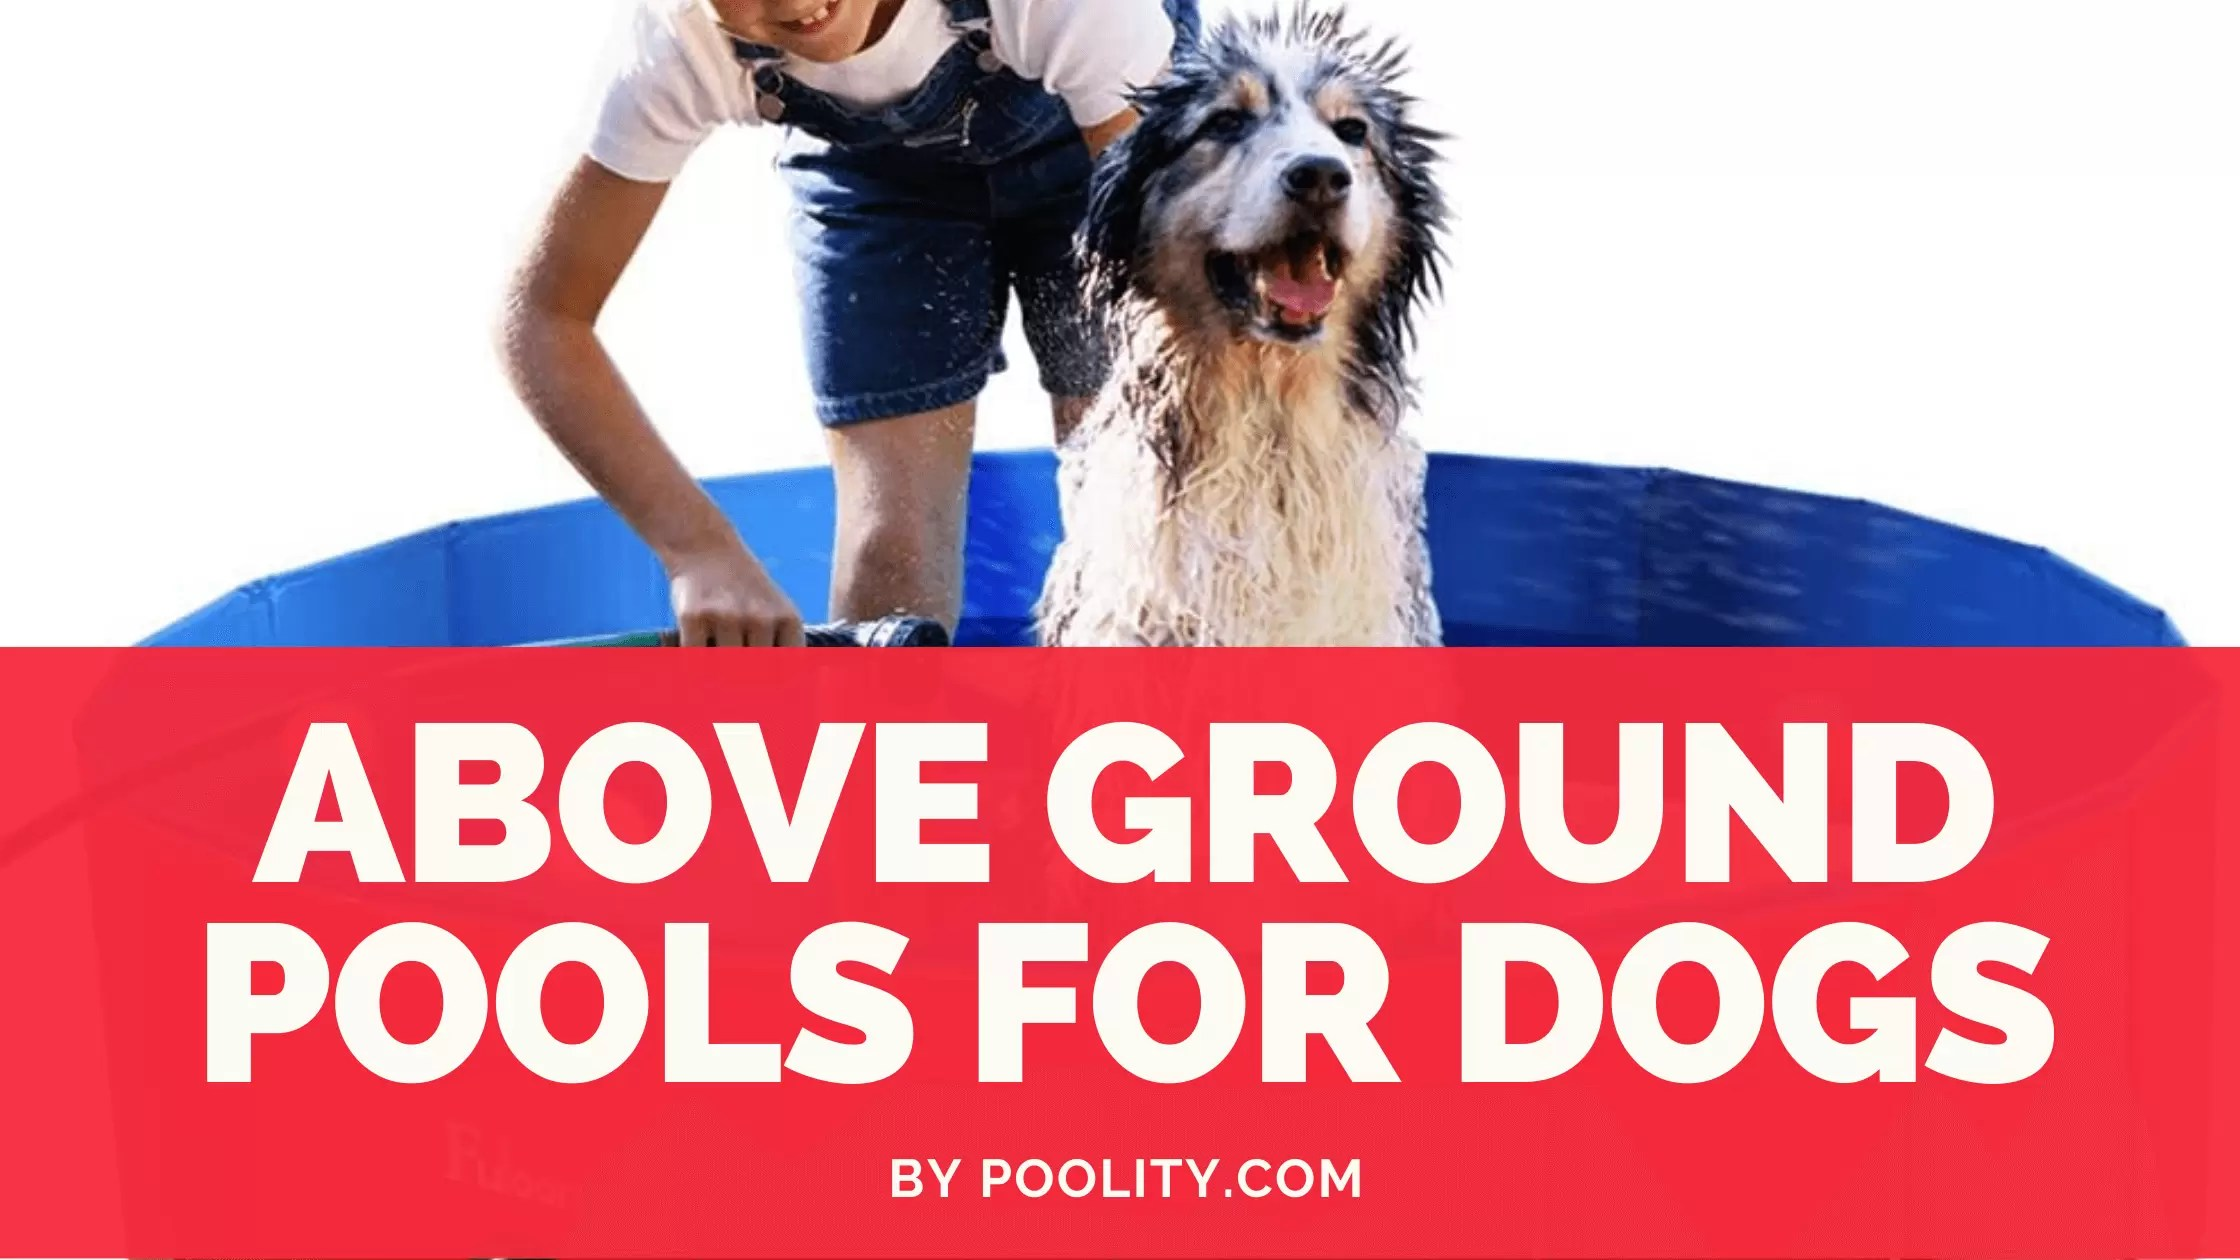 7 Best Above Ground Pools for Dogs This Summer 2020 2